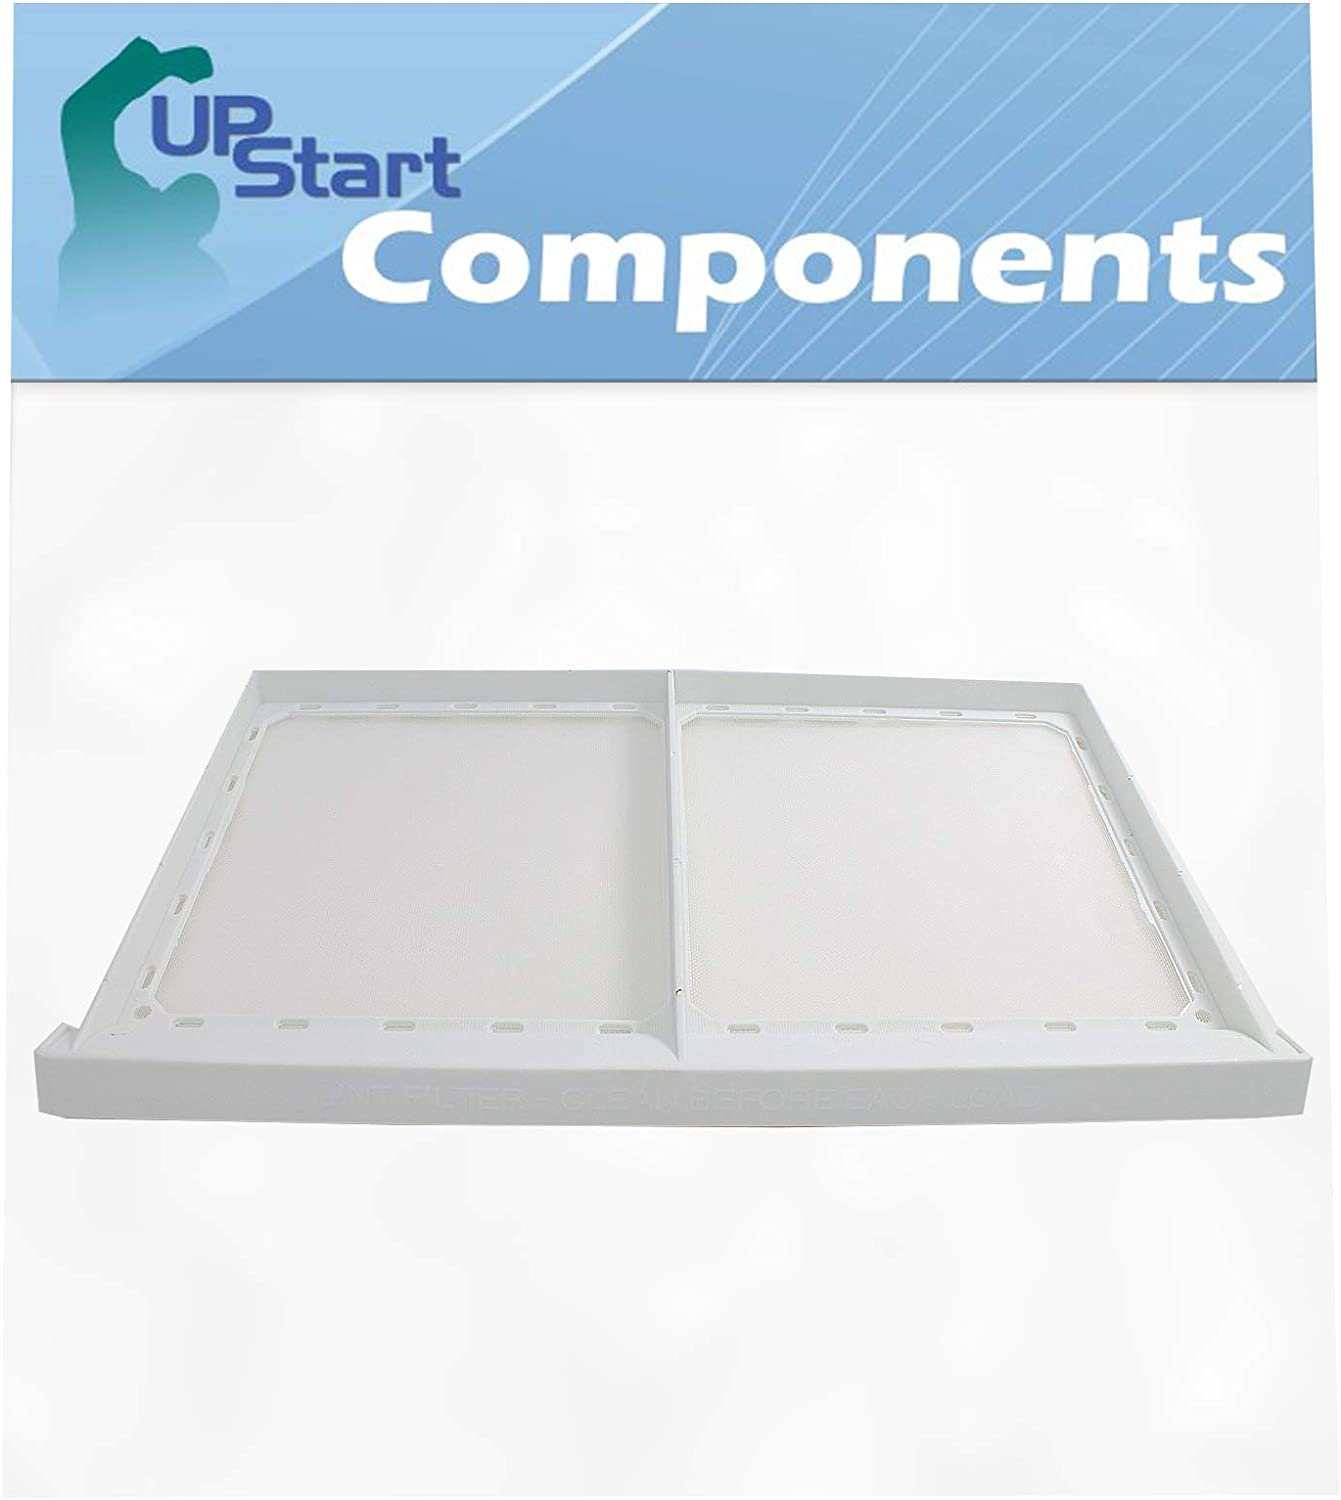 131450300 Dryer Lint Filter Replacement For Part Number Ap2106905 - Compatible With 131450300 Lint Screen Trap Catcher